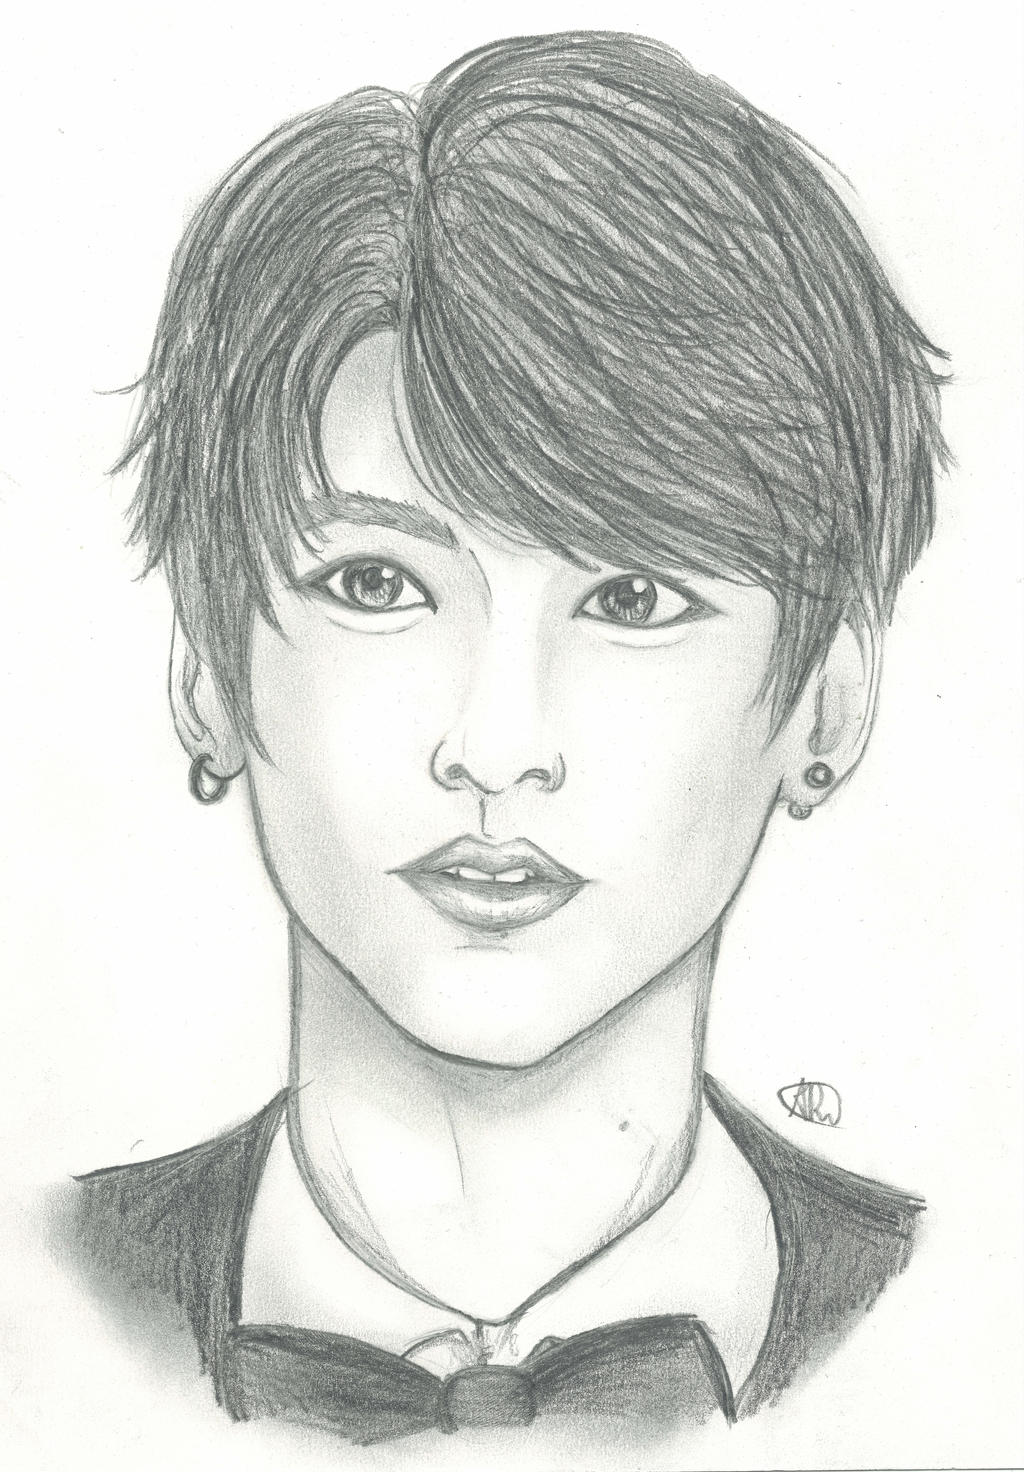 Jeon Jungkook By Jungkrazy On DeviantArt